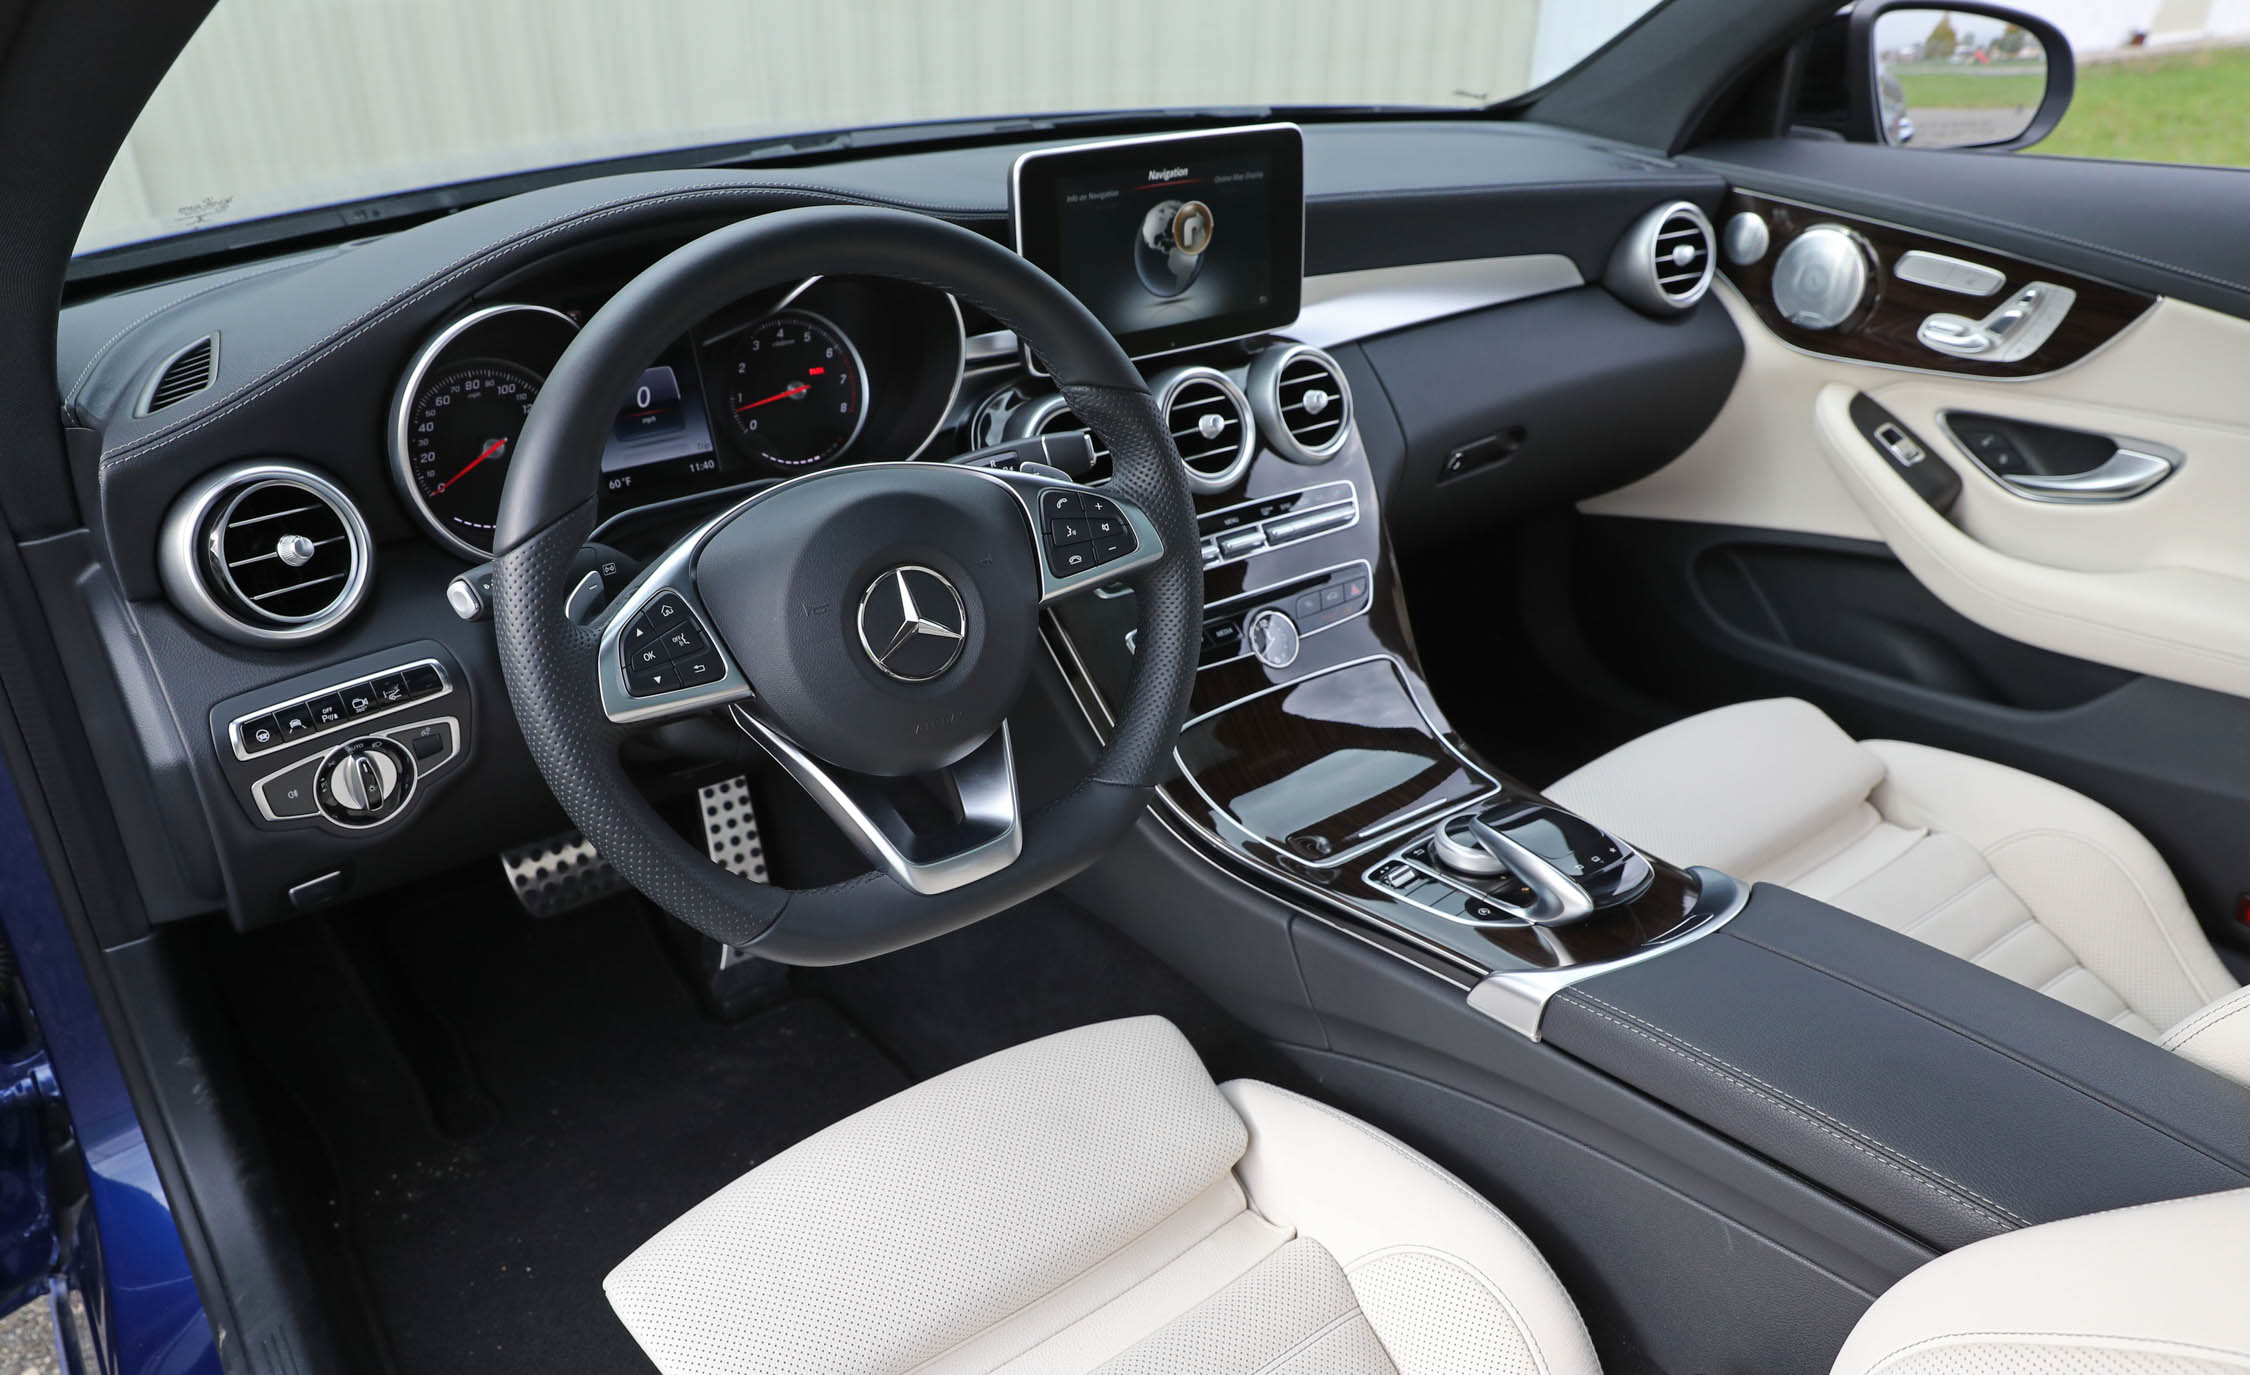 2017 Mercedes Benz C300 4MATIC Coupe Interior Cockpit And Dash (Photo 24 of 44)